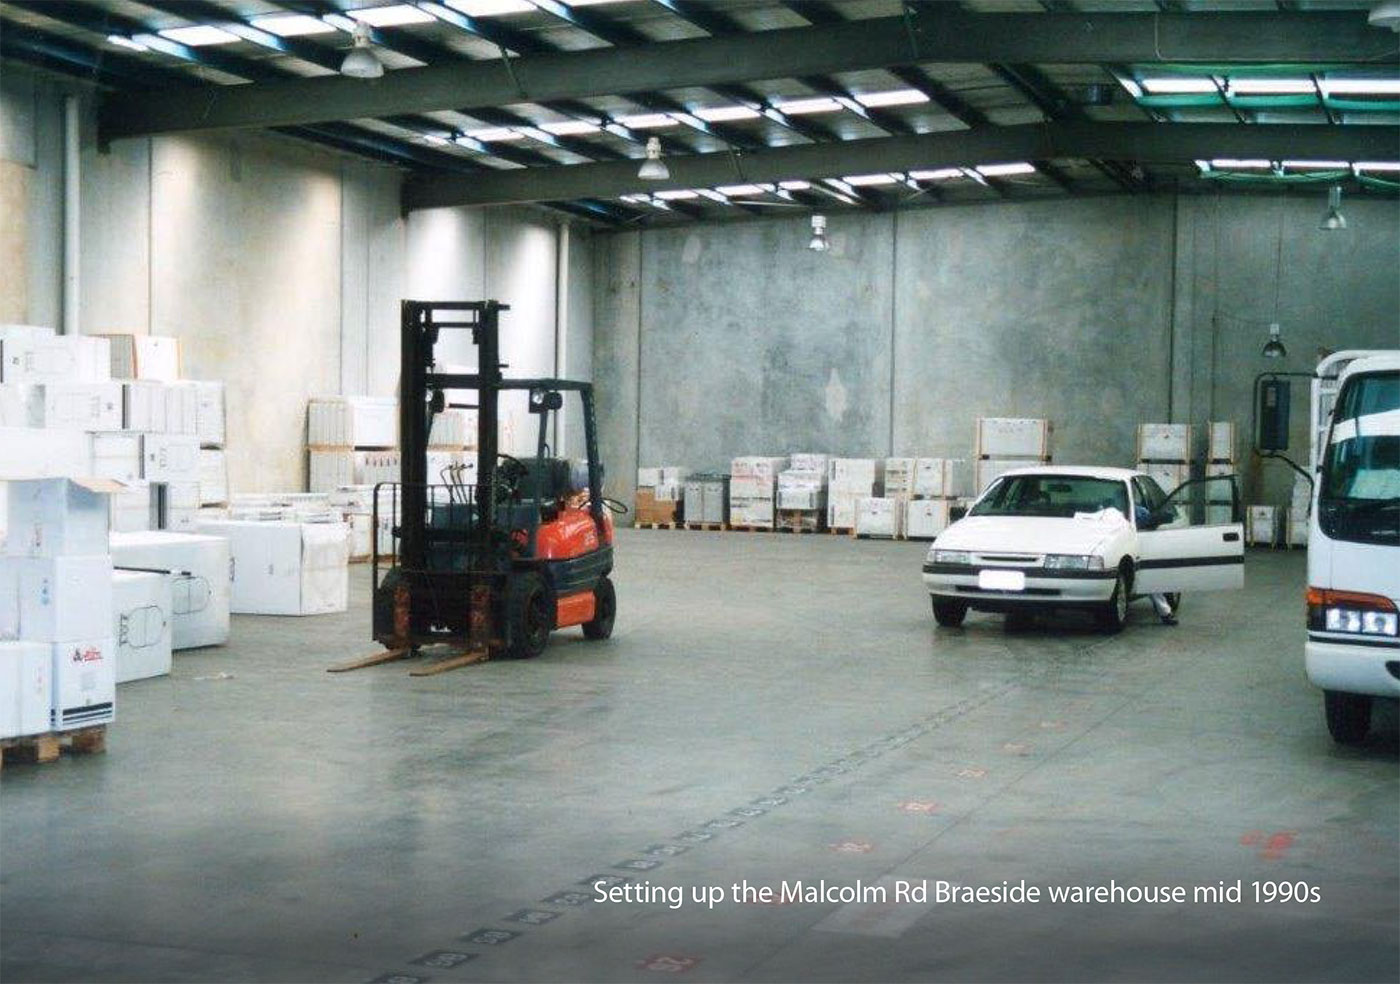 Setting up the Malcolm Td Braeside warehouse mid 1990s